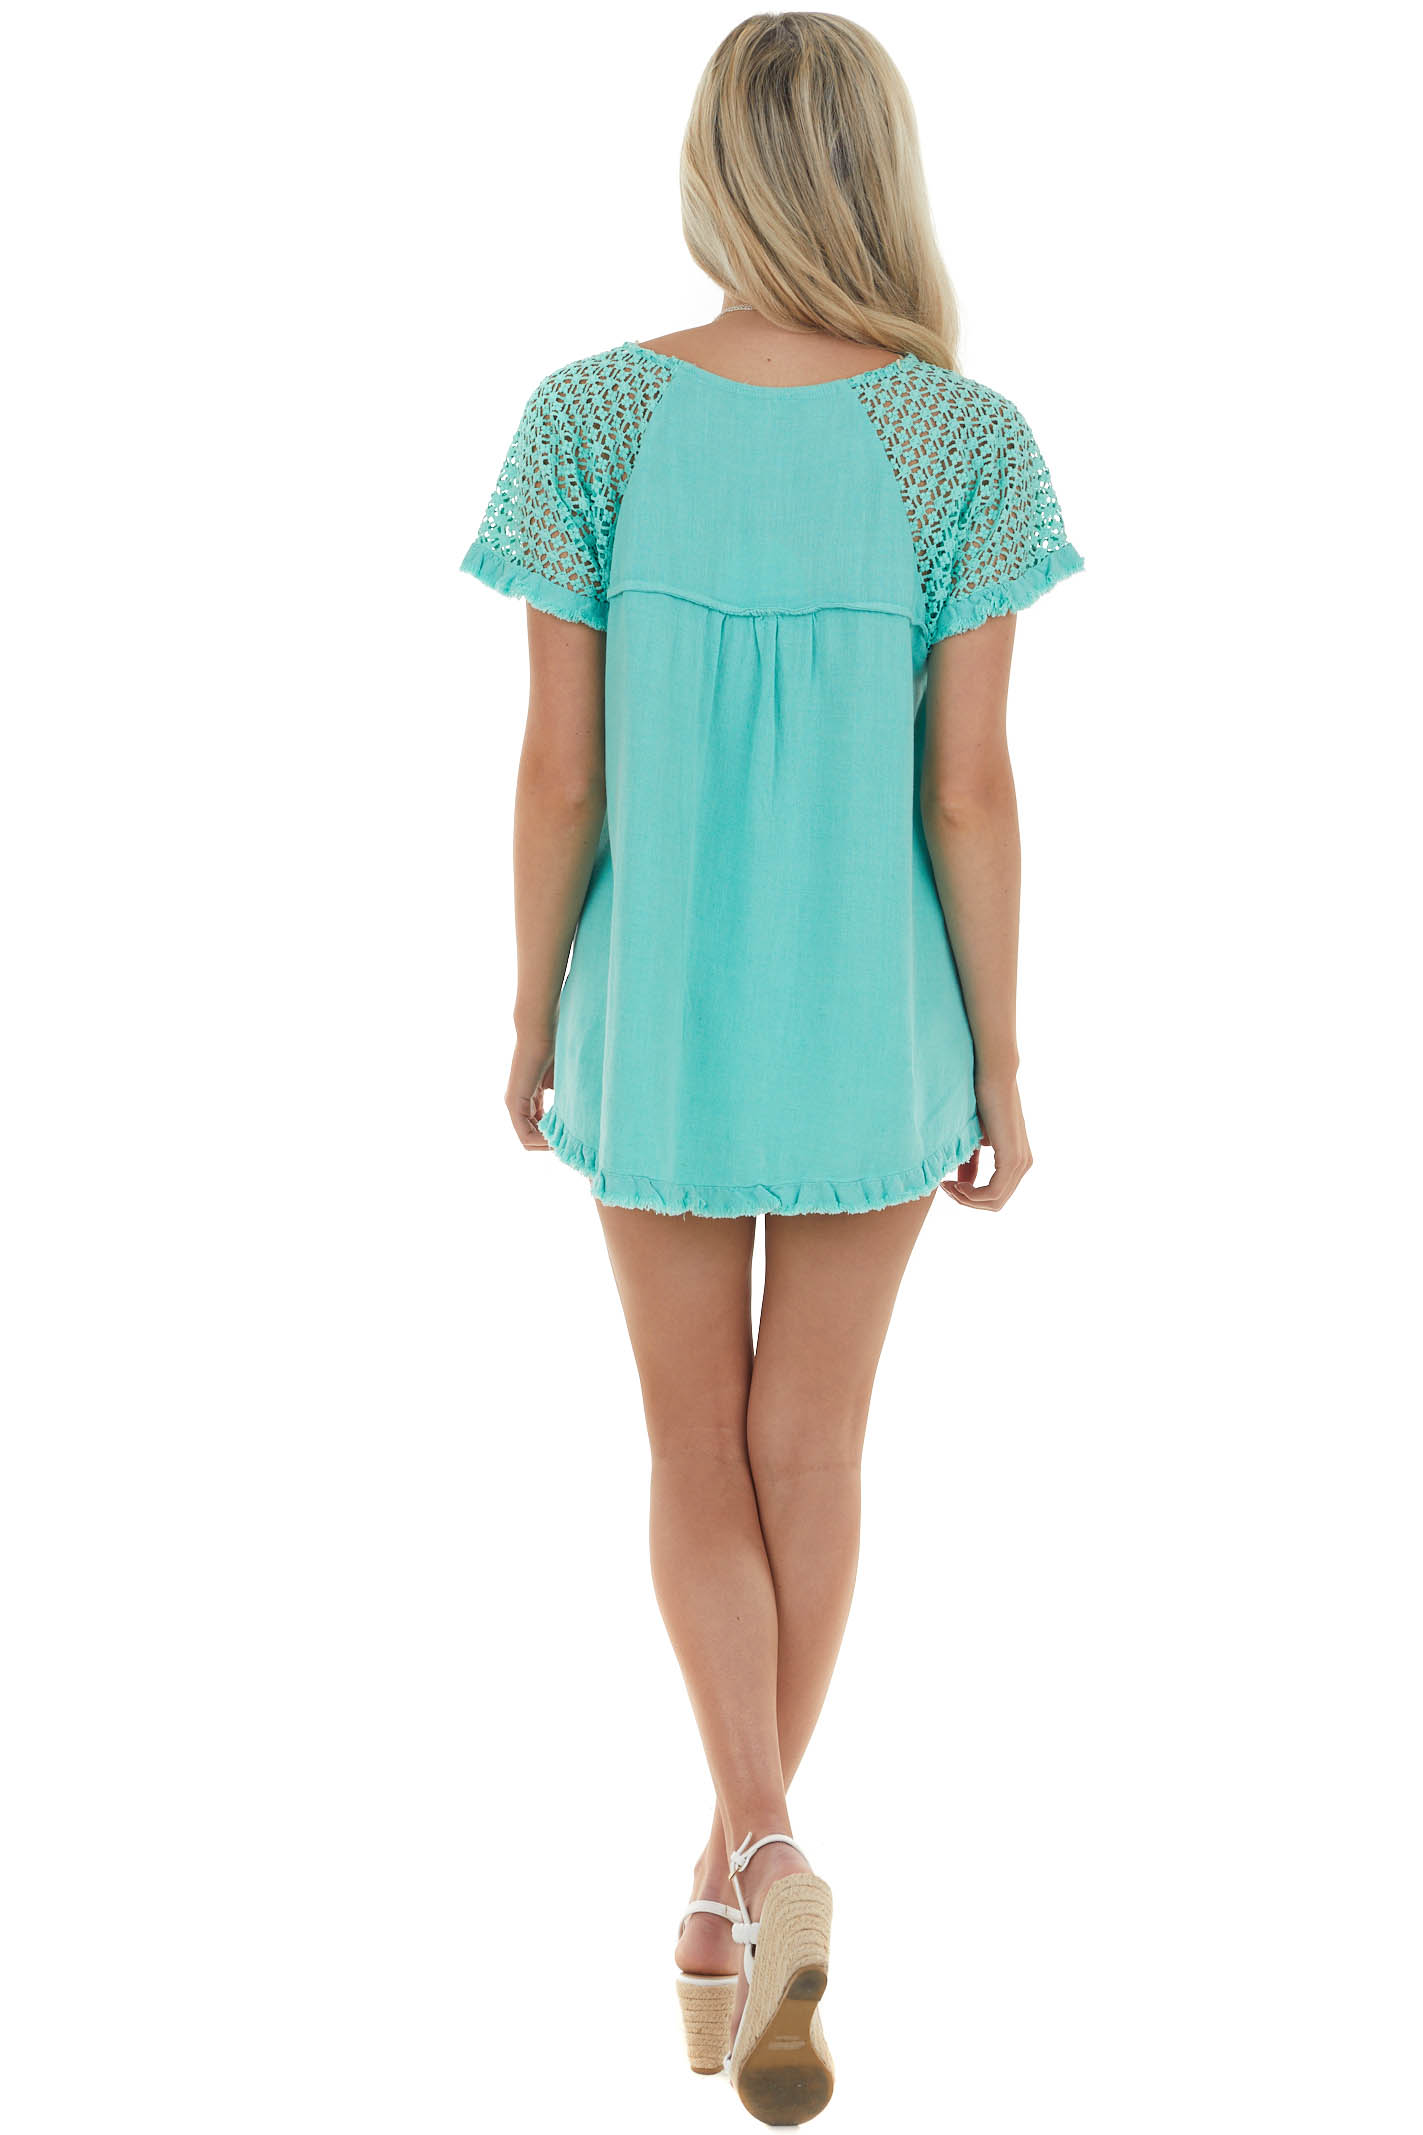 Jungle Green Textured Short Sleeve Top with Fray Details